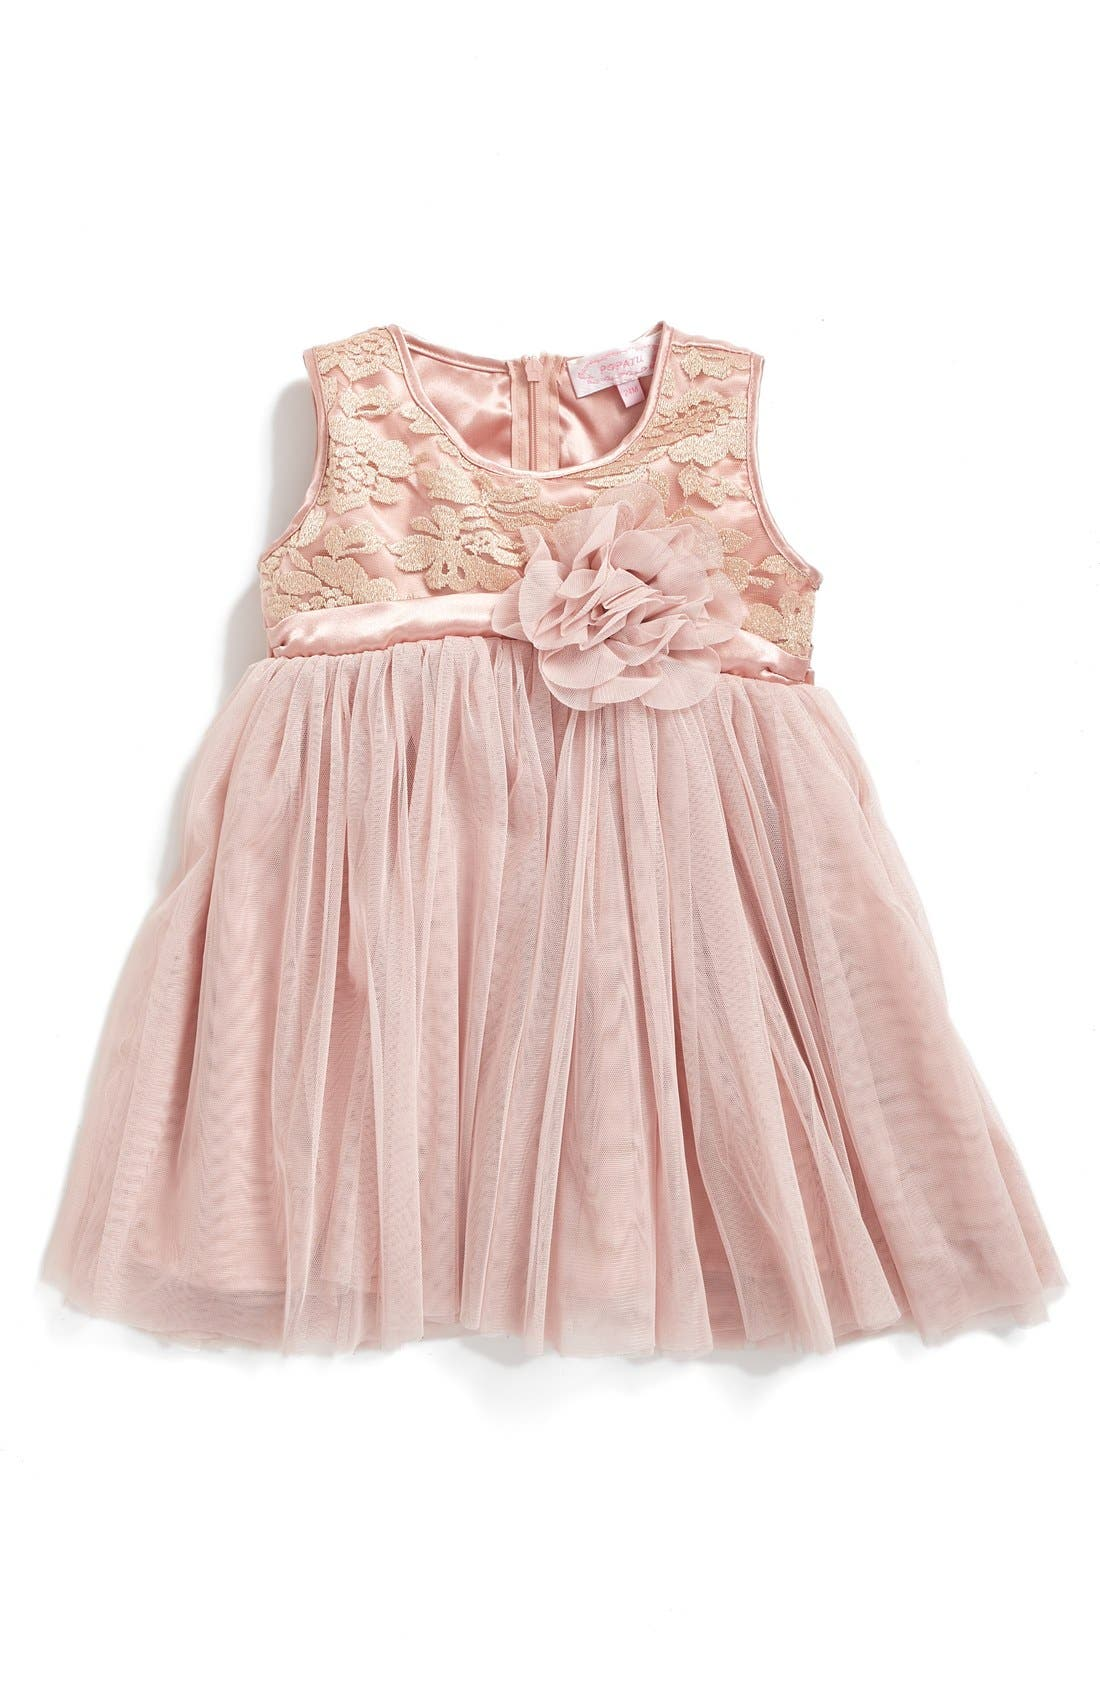 Main Image - Popatu Empire Waist Tulle Dress (Baby Girls)